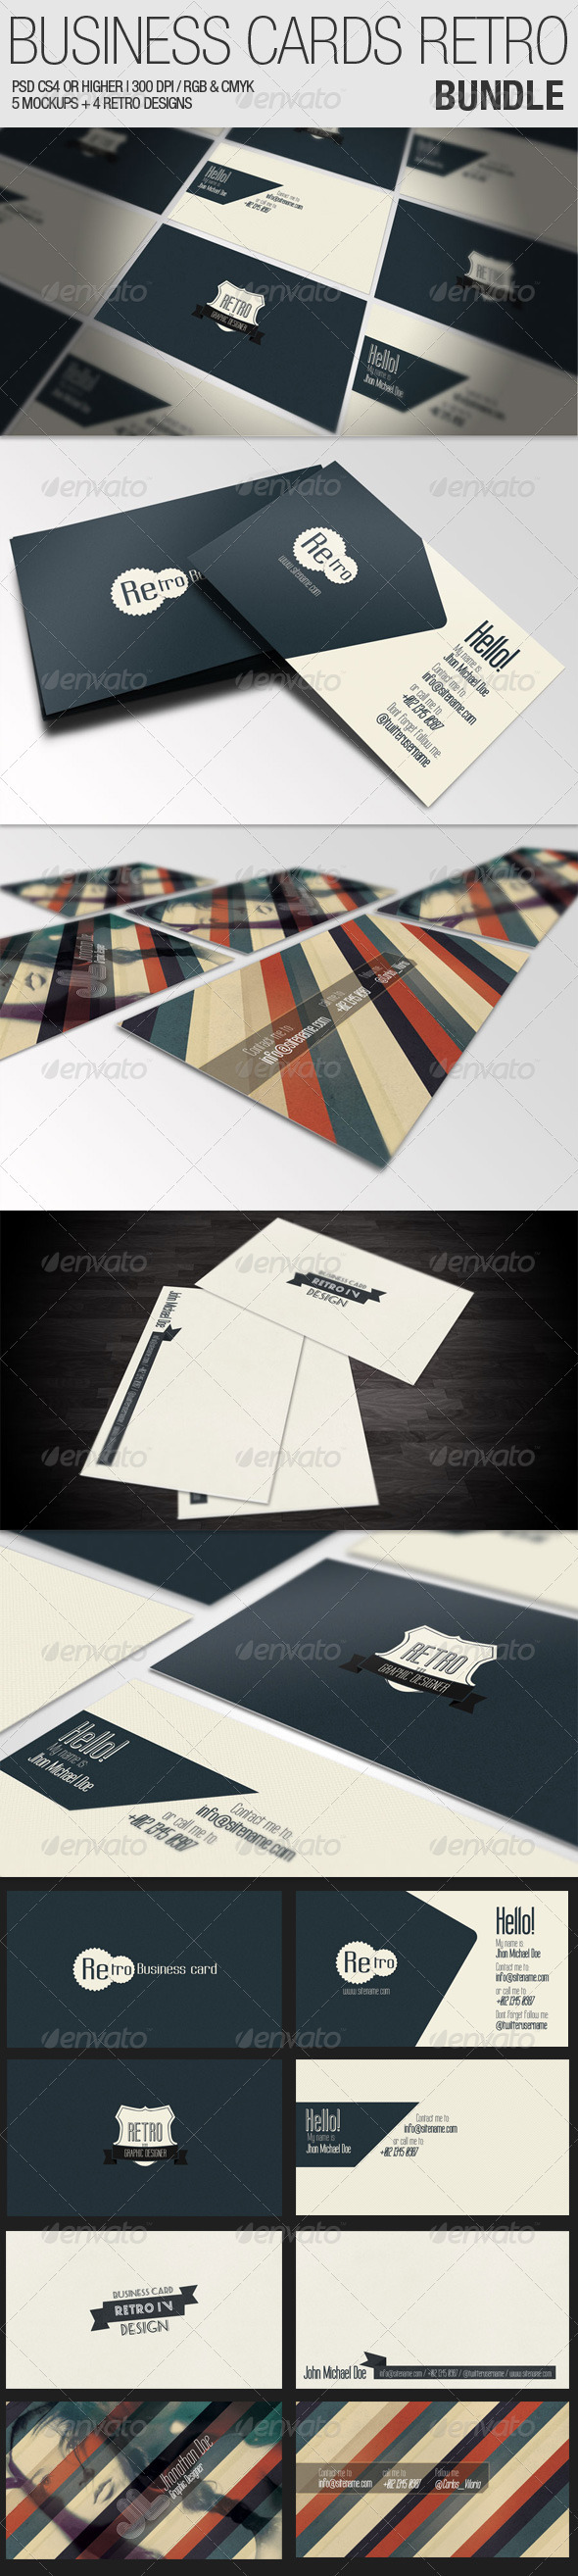 Business Cards Retro Bundle